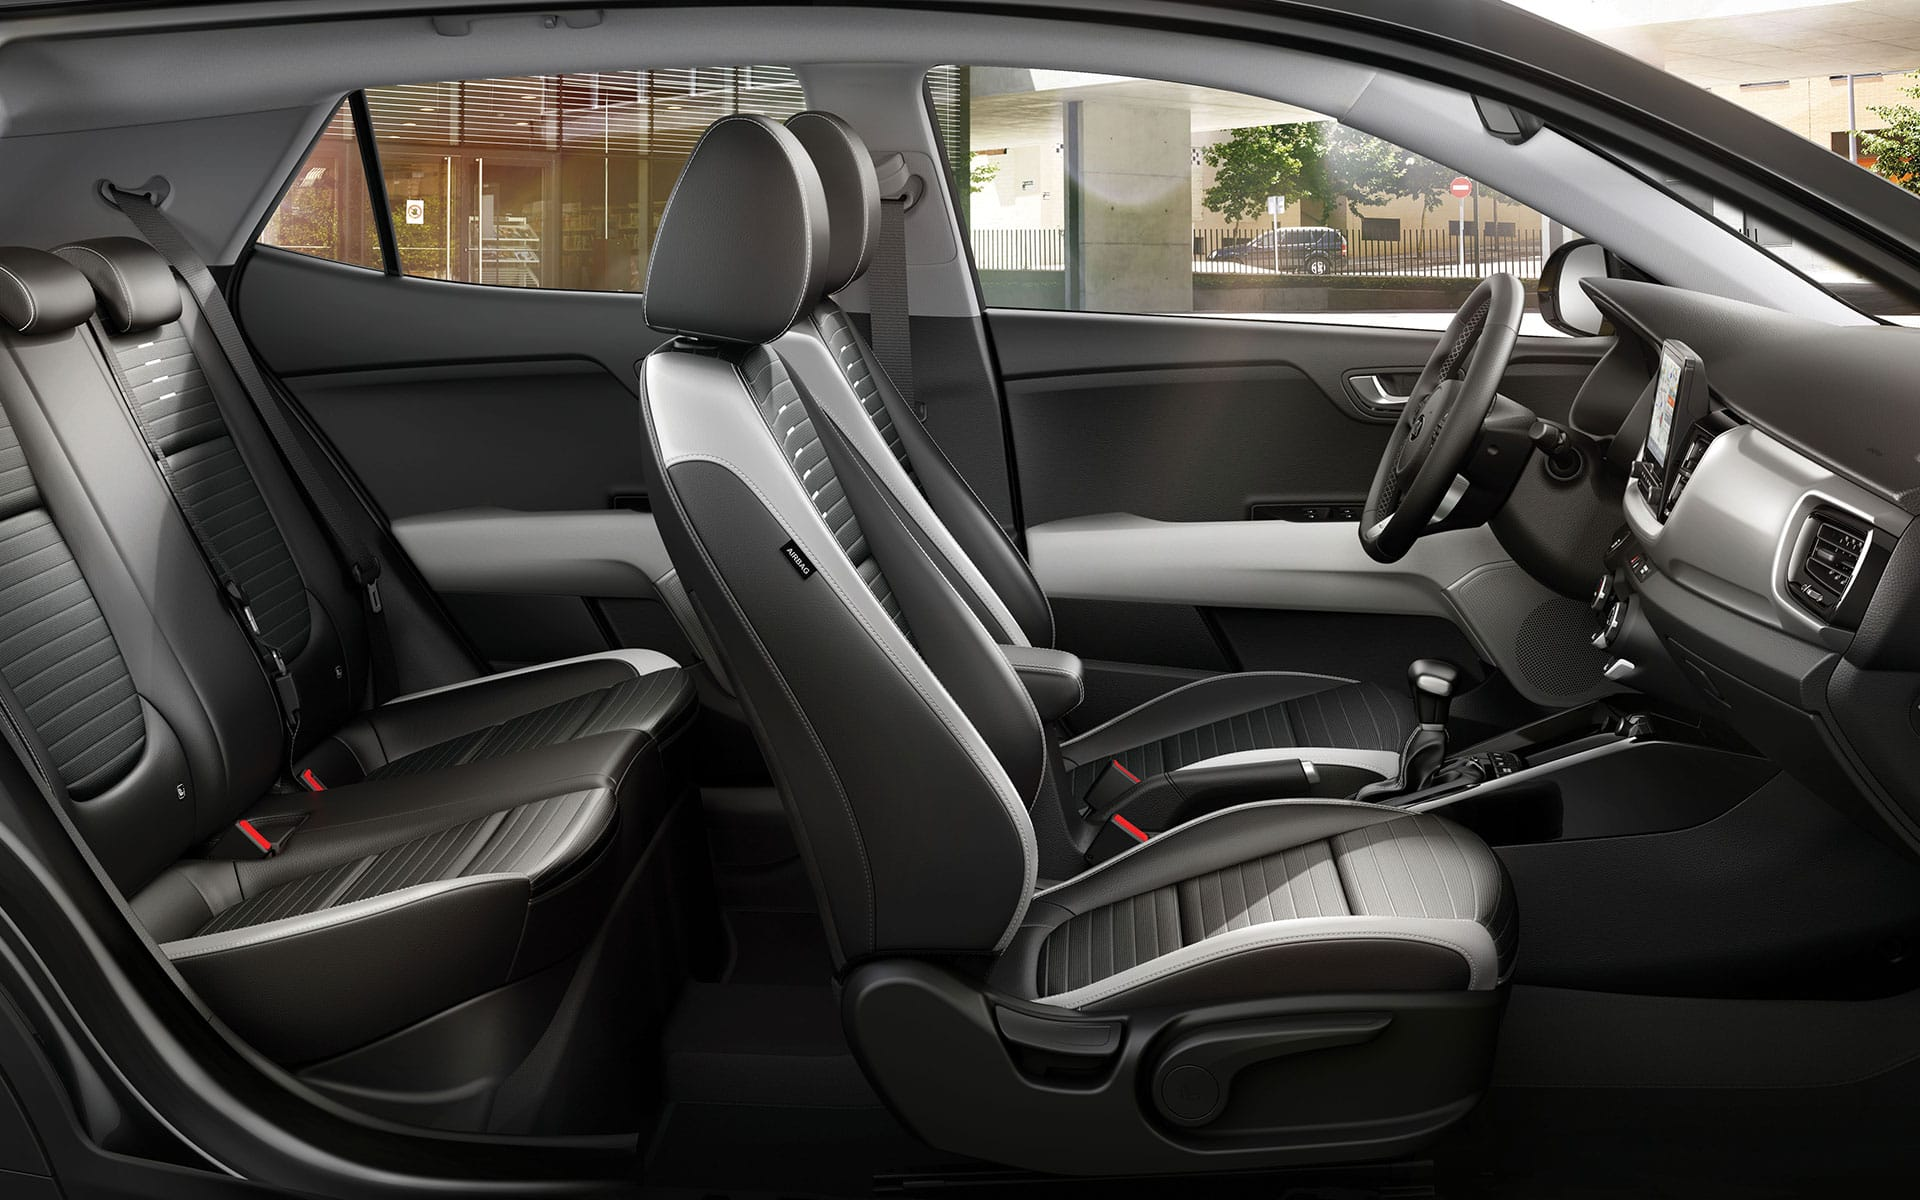 The new Kia Stonic interior